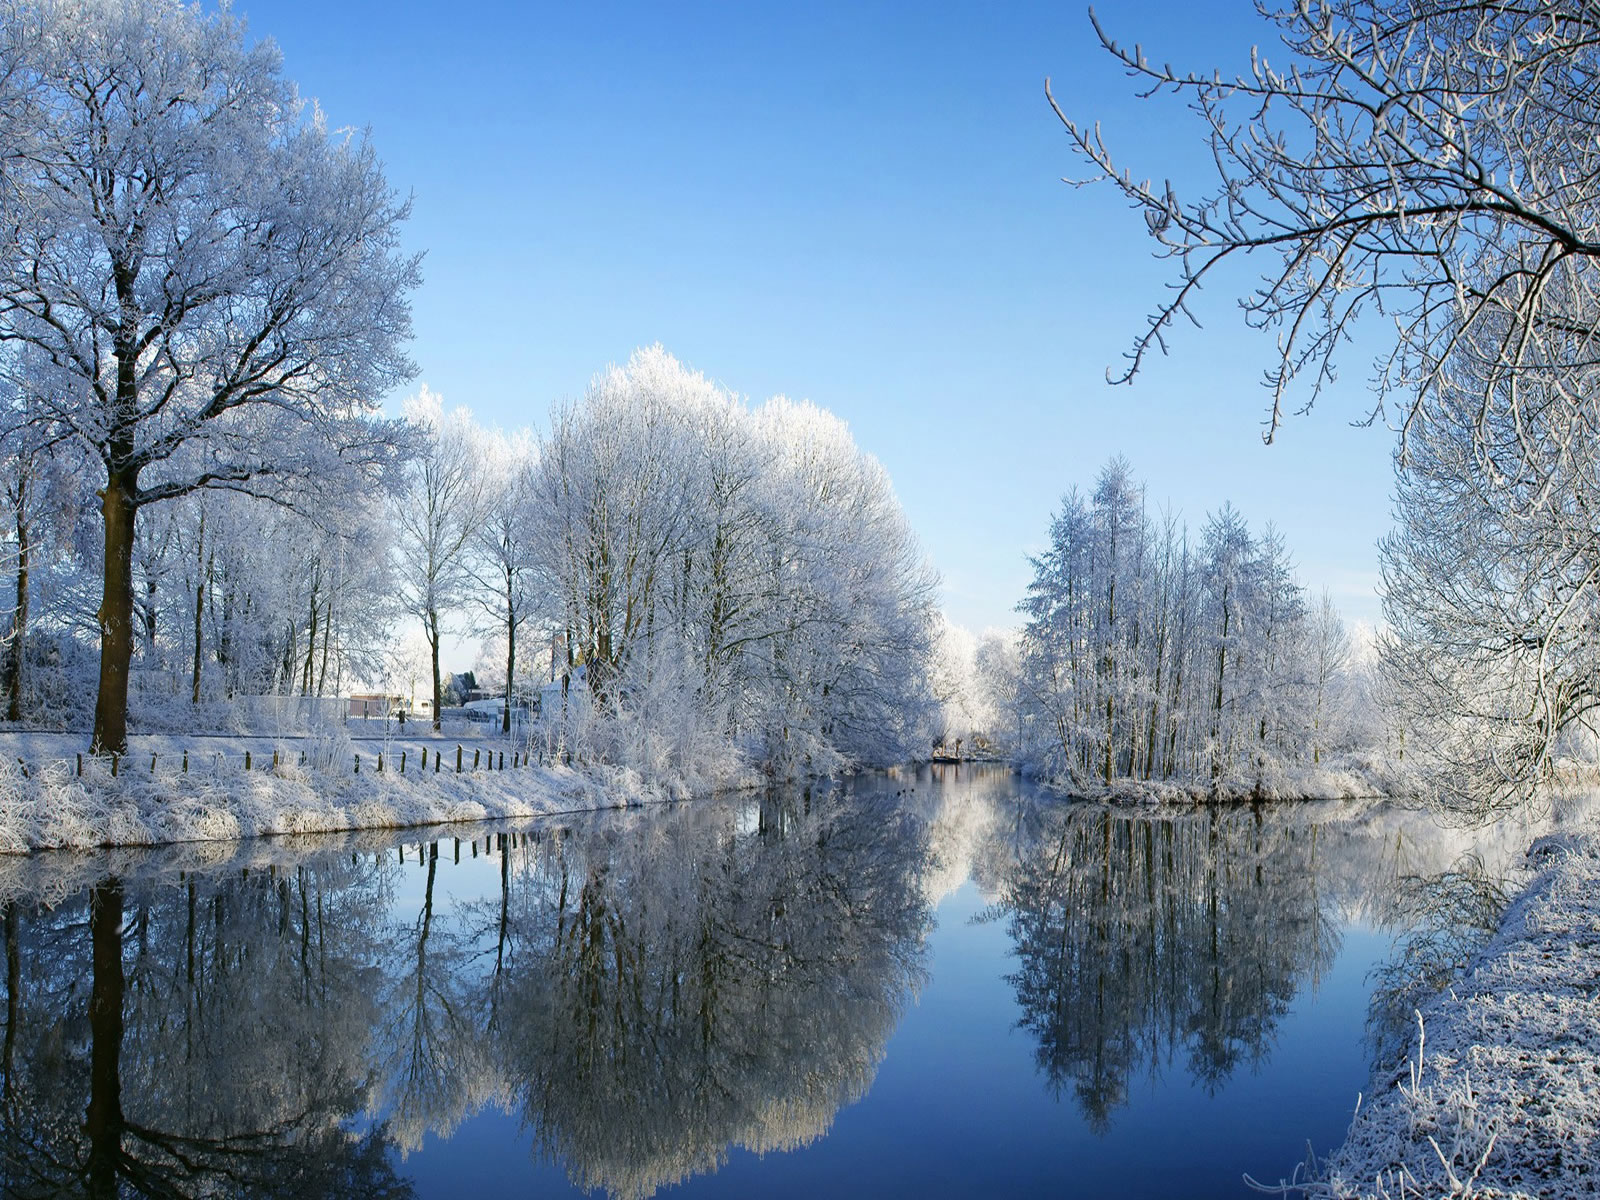 Download Winter Wallpaper For Desktop1 1600x1200 1600x1200